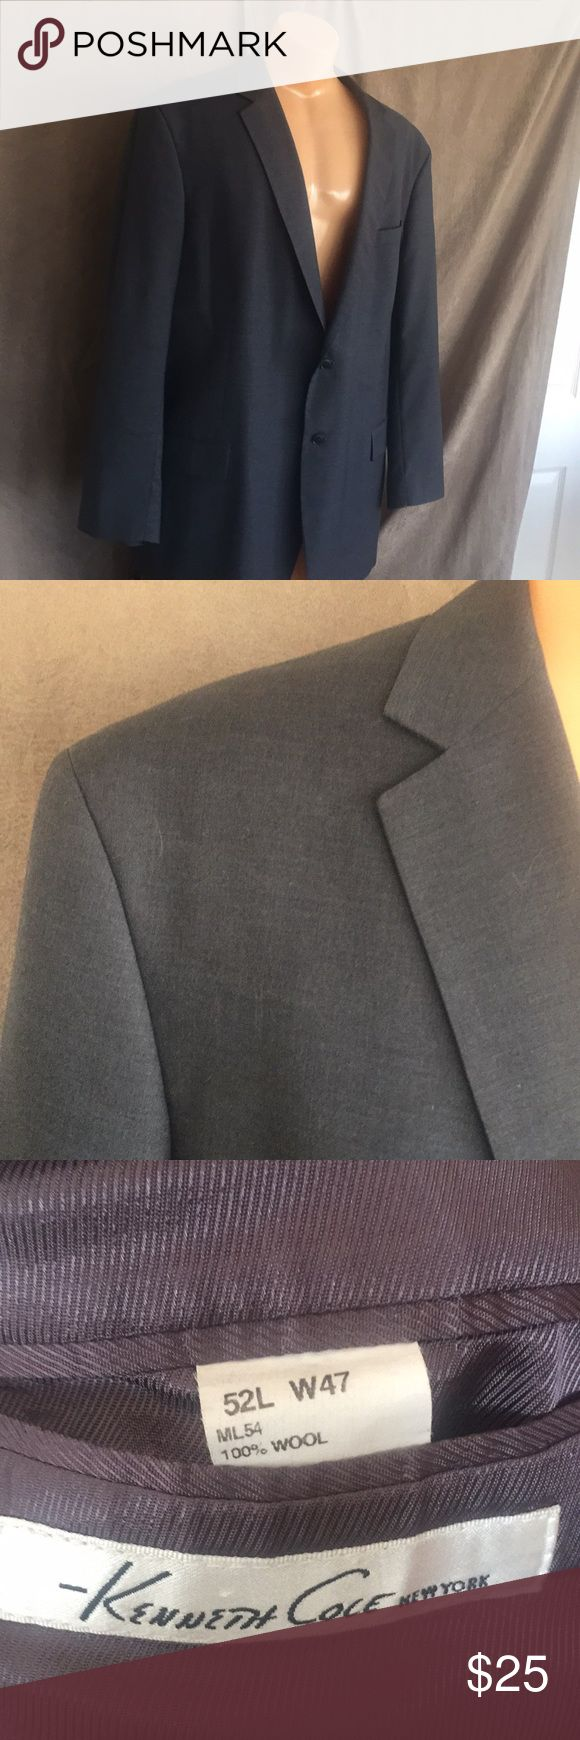 Kenneth Cole gray suit jacket 52L W47 P195 This suit jacket is in excellent condition.  Big and tall! Kenneth Cole Suits & Blazers Sport Coats & Blazers